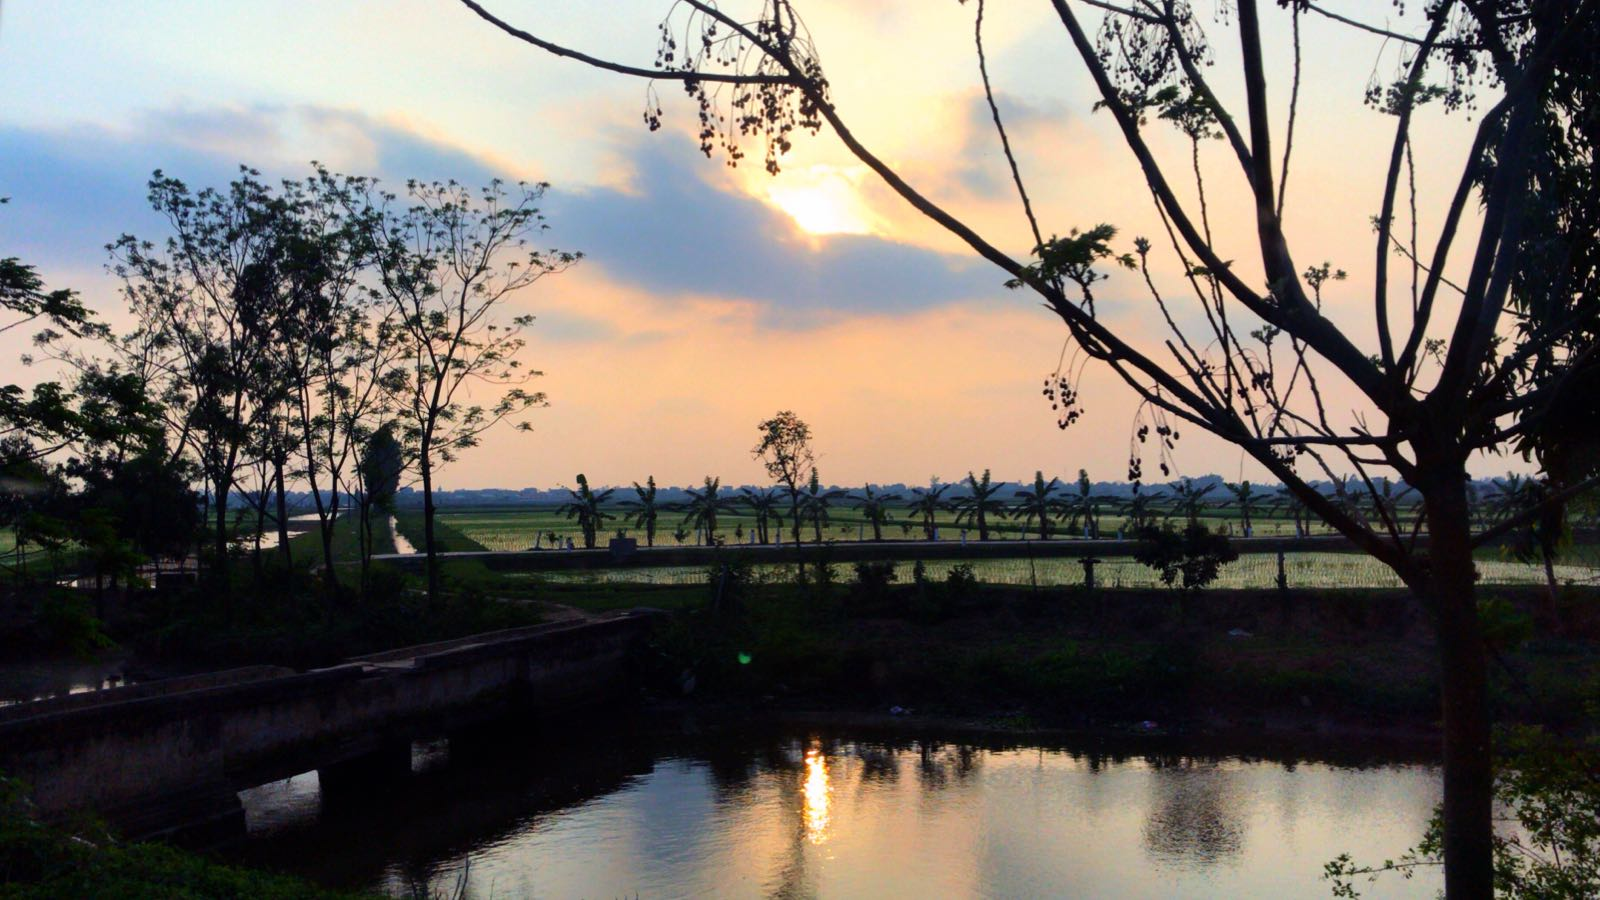 View in one of the evenings in Vietnam, Hung Yen